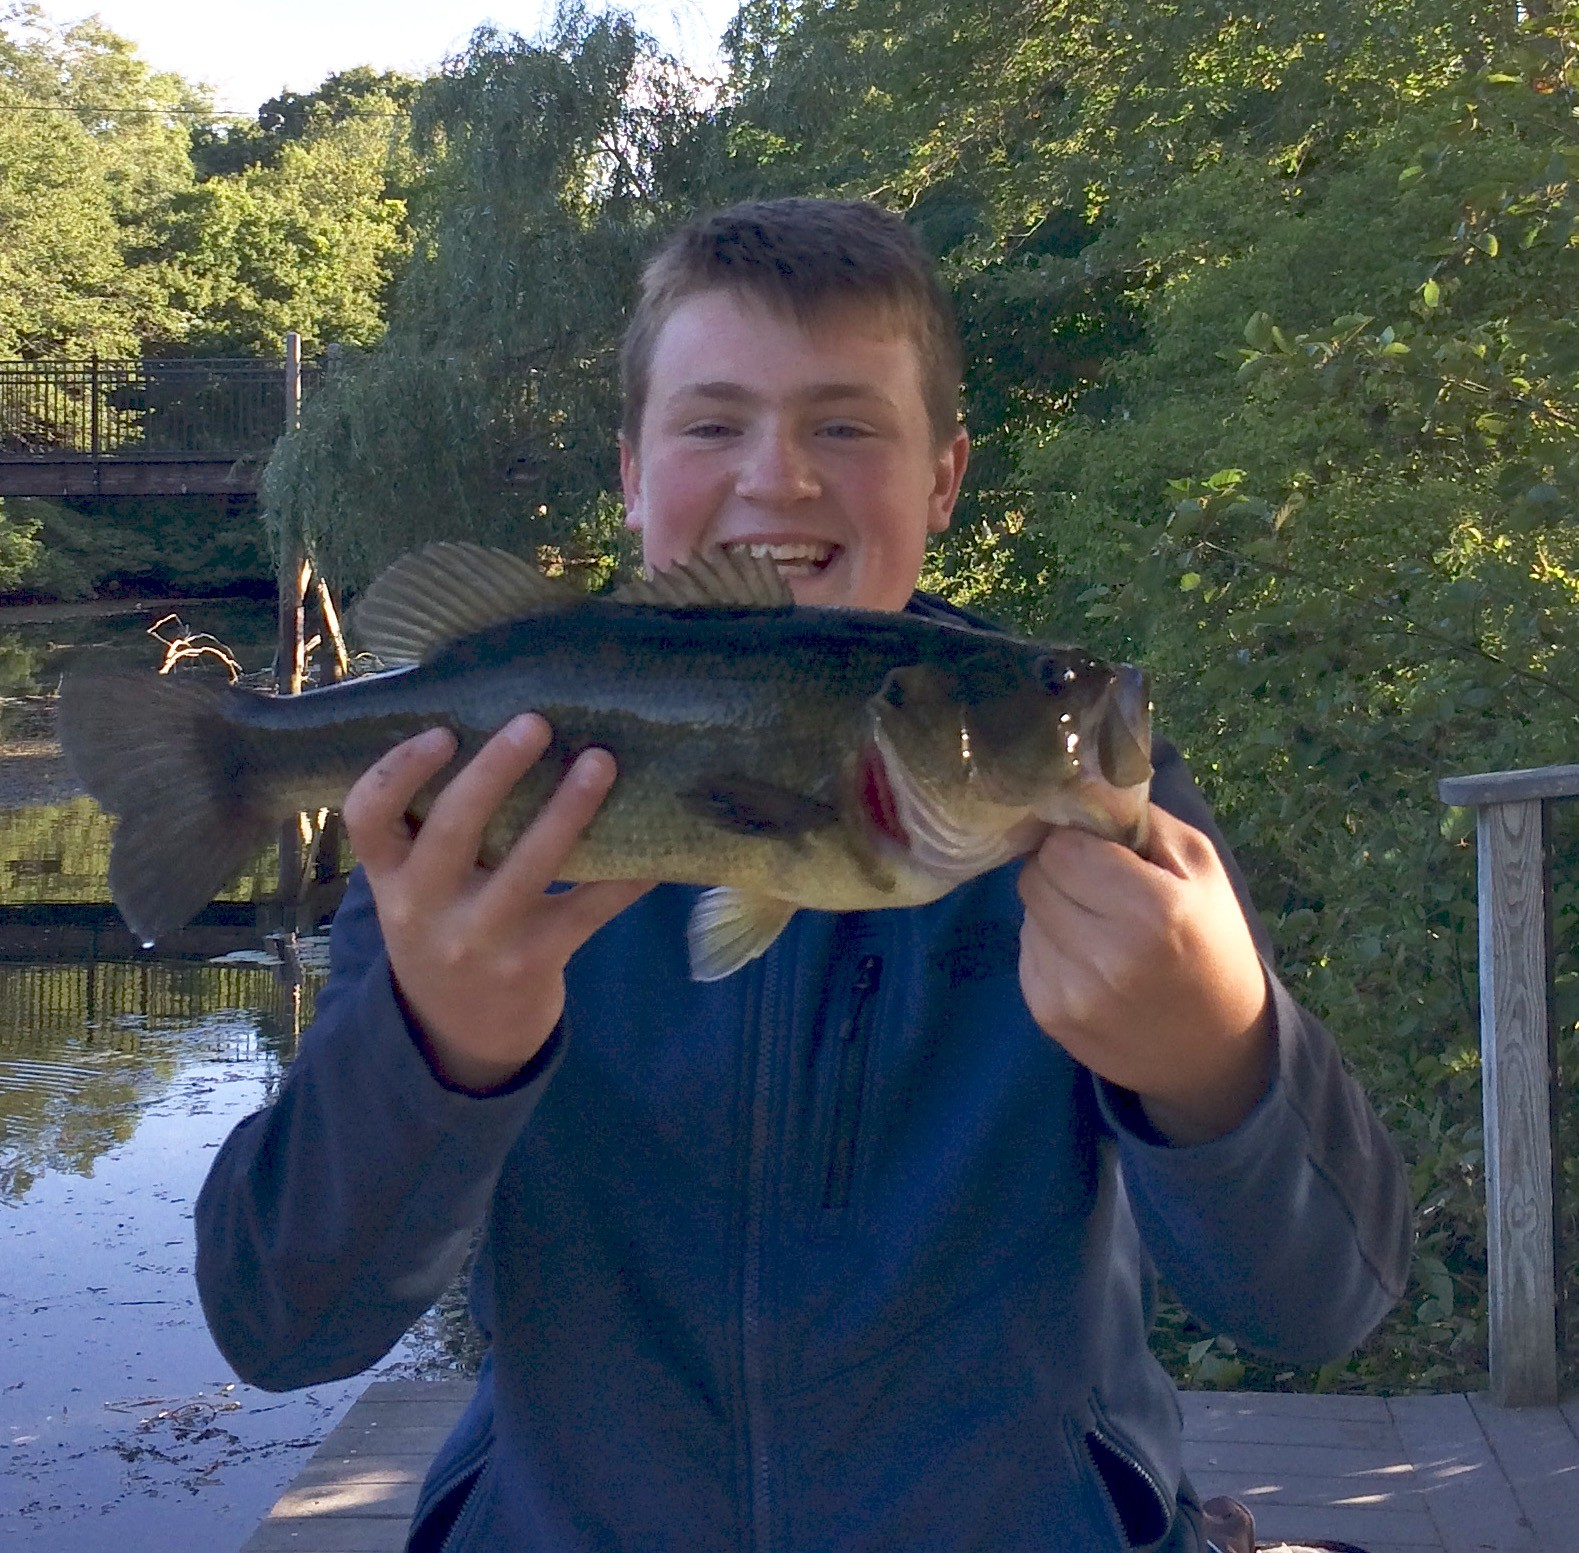 Noah Brunelli of Wakefield (13 years old) with the 4.9 pound largemouth bass he caught on the Saugatucket River with worms he dug from the woods next to his home.